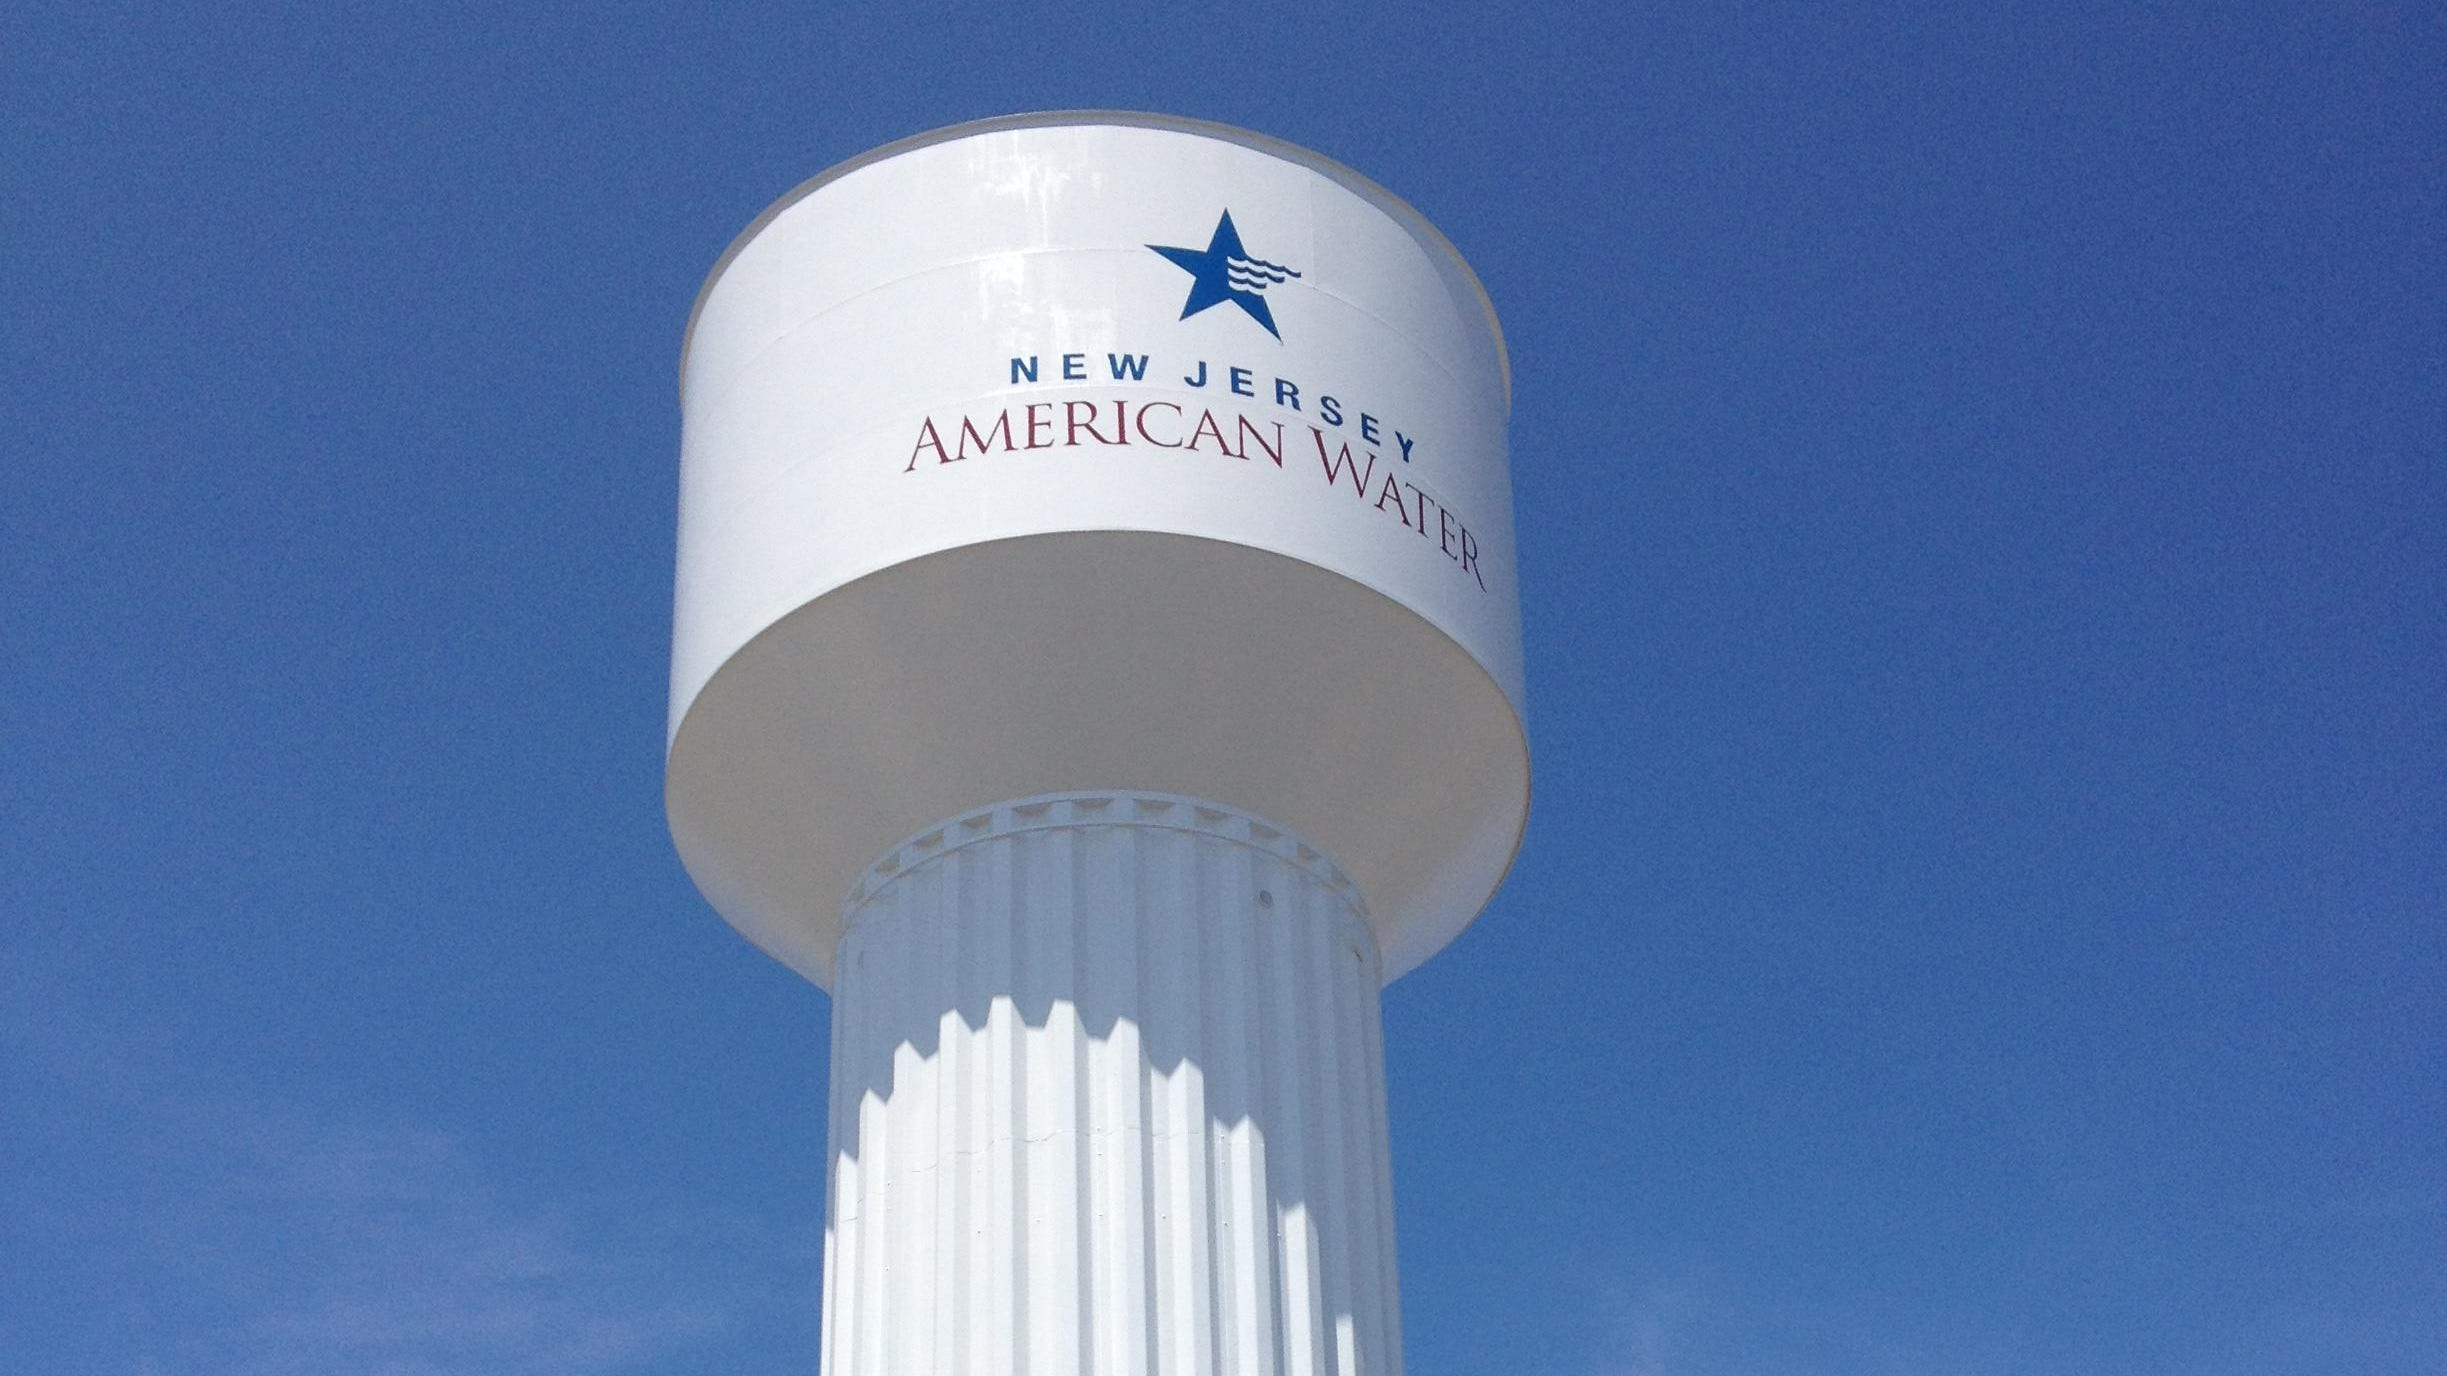 A New Jersey American Water Co. water tower in Toms River.